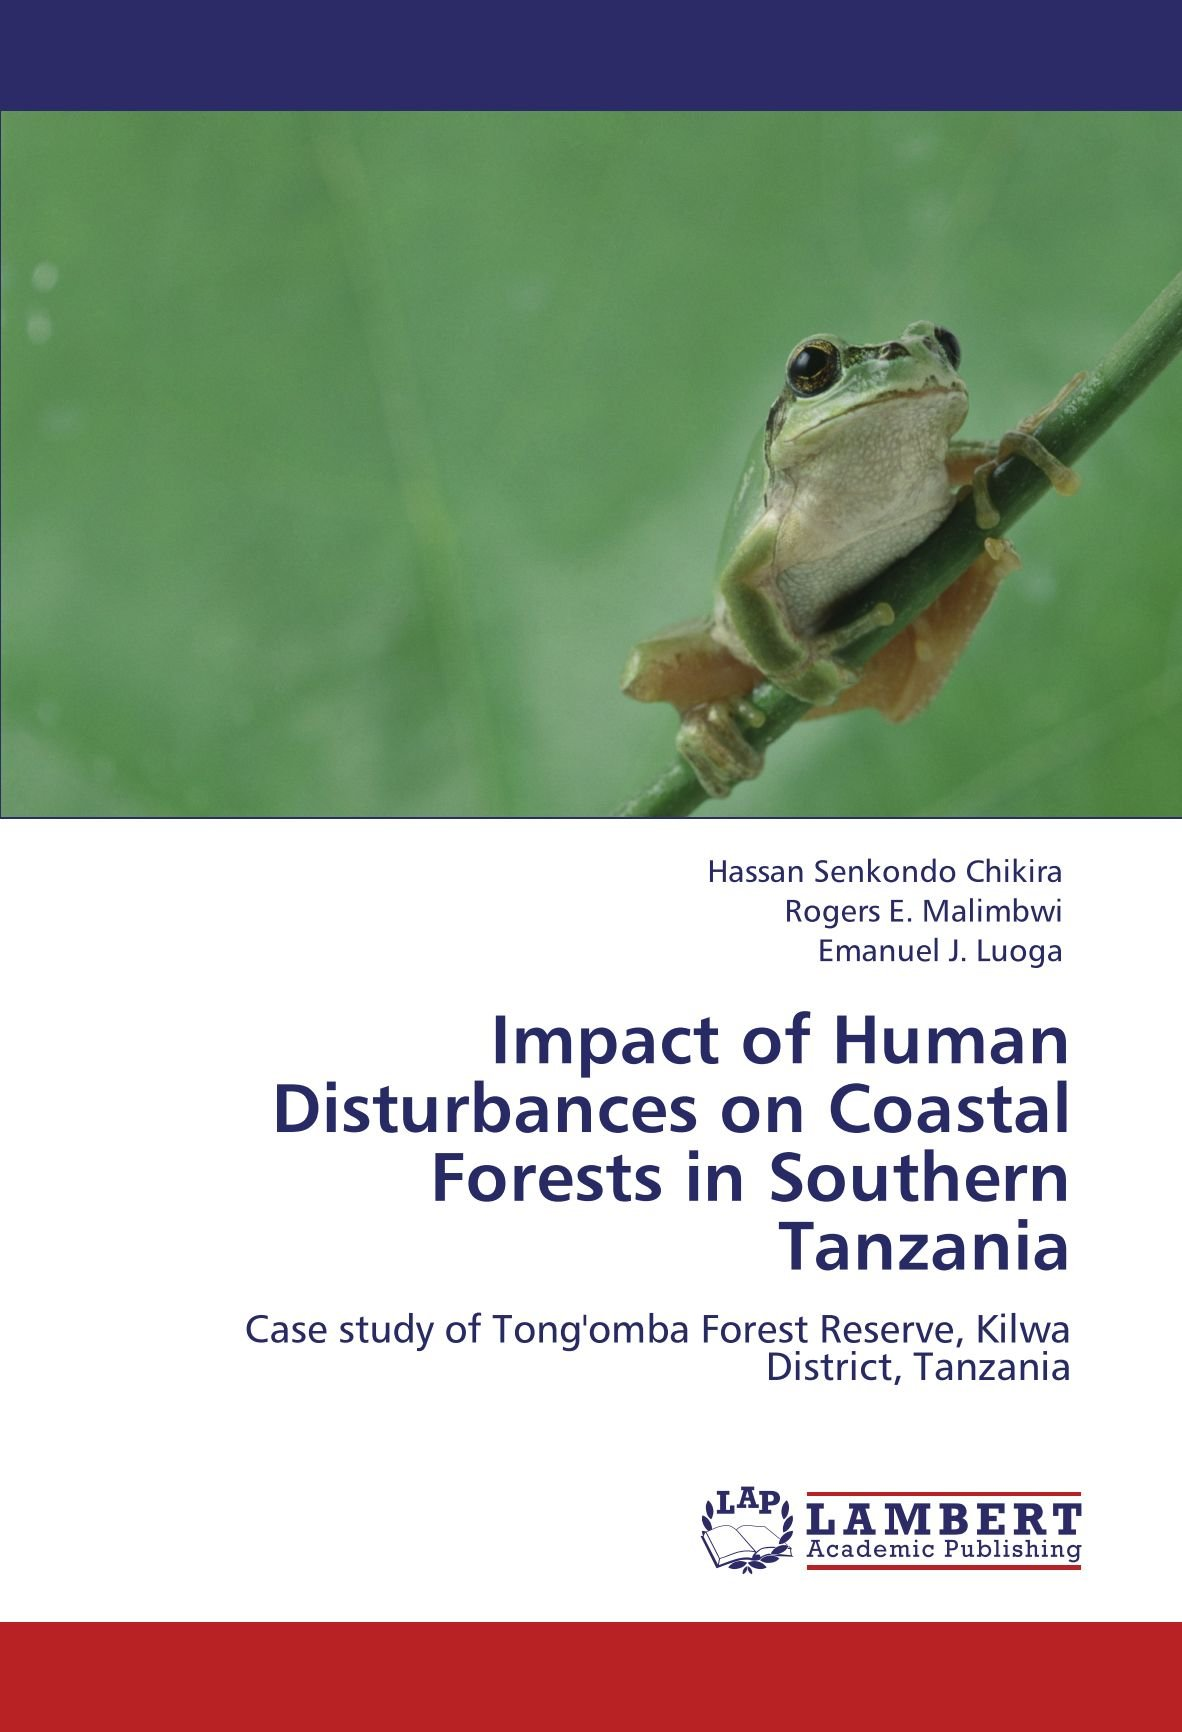 Impact of Human Disturbances on Coastal Forests in Southern Tanzania: Case study of Tong'omba Forest Reserve, Kilwa District, Tanzania PDF